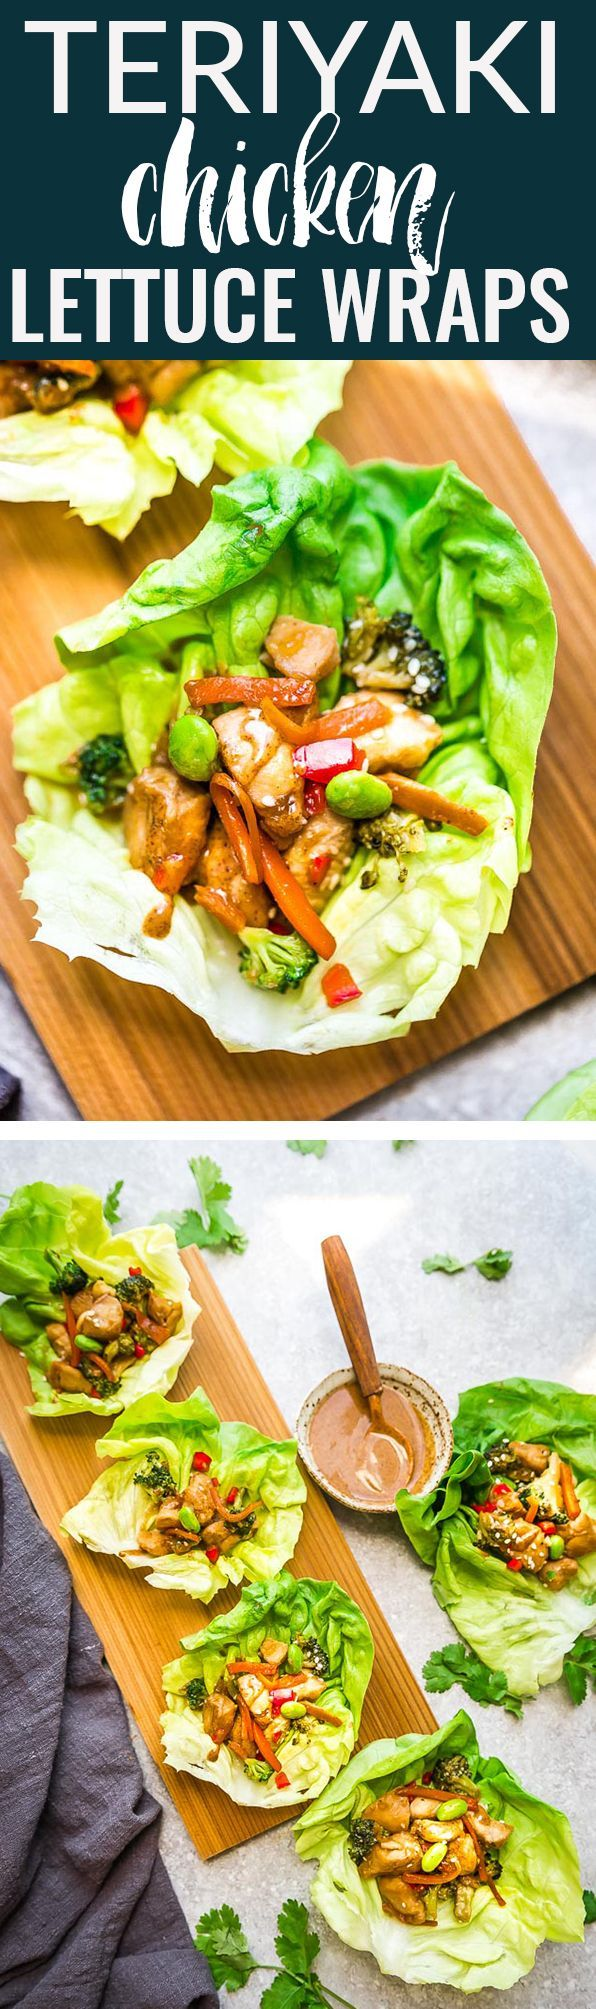 Teriyaki Chicken Lettuce Wraps – a light and healthy meal with all the favorite sweet and savory flavors of the popular takeout favorite and have low carb and ketogenic friendly options. Best of all, comes together super quick so they're perfect for busy weeknights or serving as an appetizer at a party. #keto #lowcarb #healty #teriyaki #lettucewraps #chicken